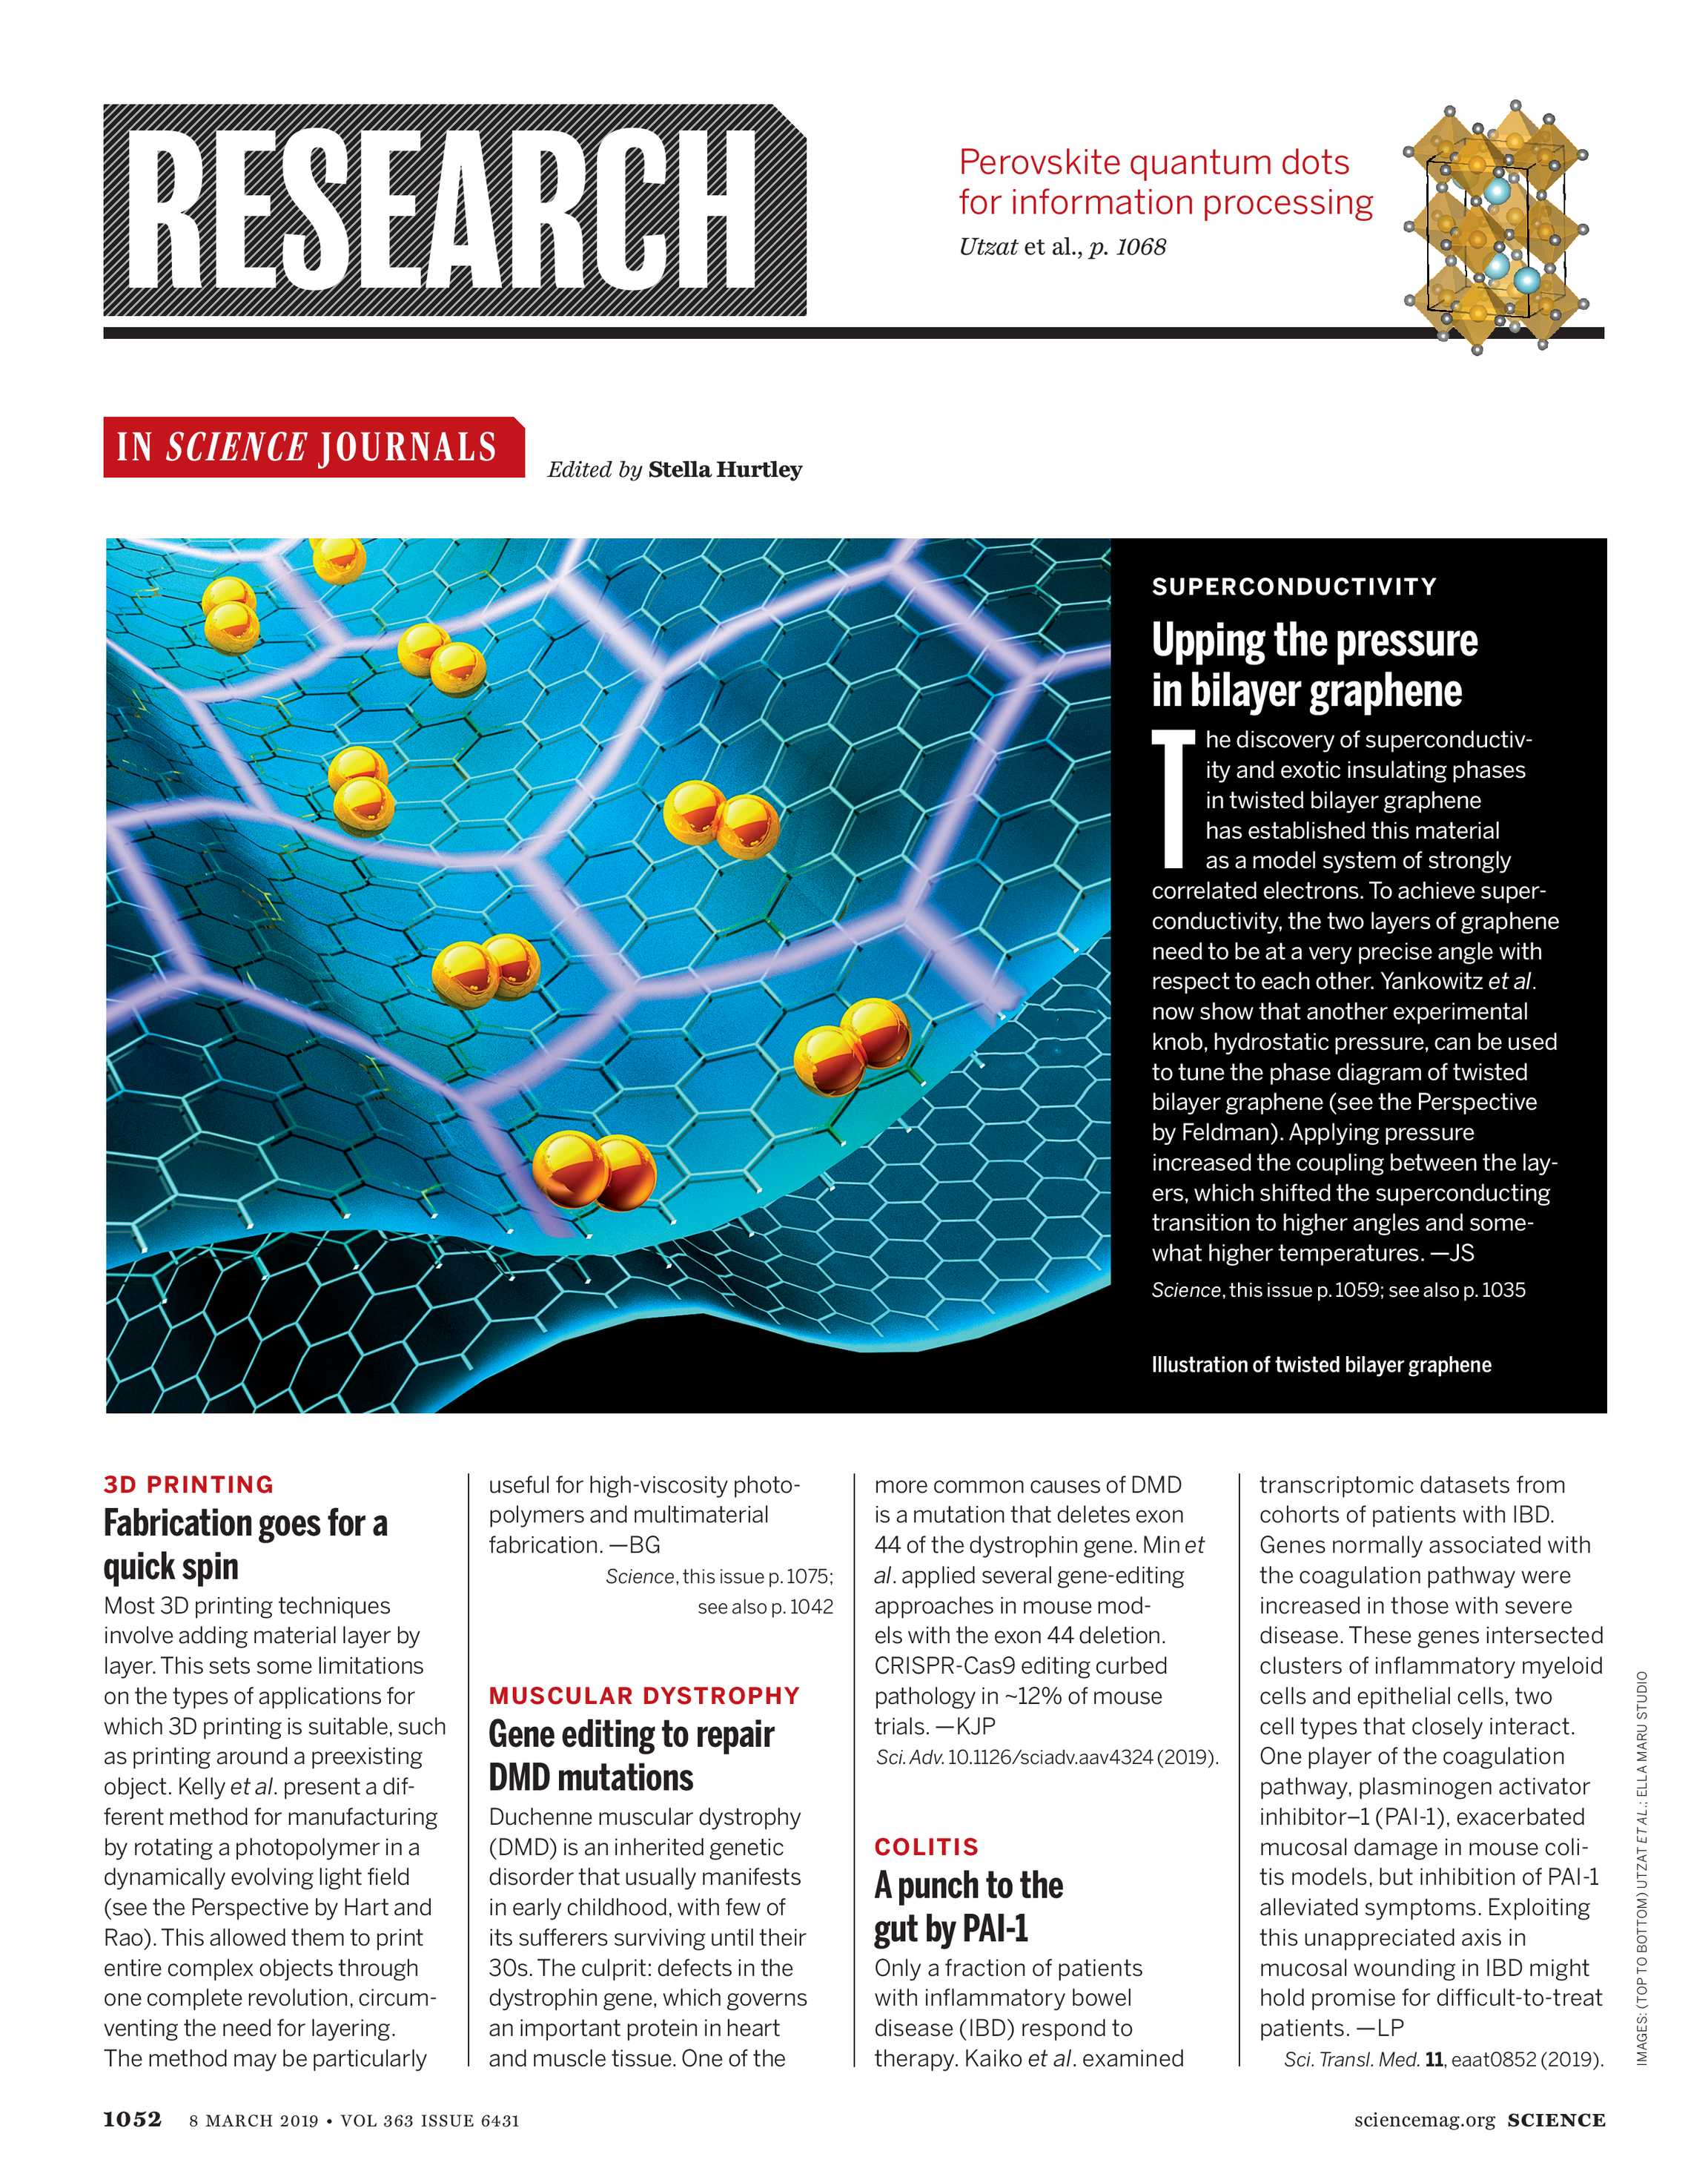 Science Magazine - March 8, 2019 - page 1052